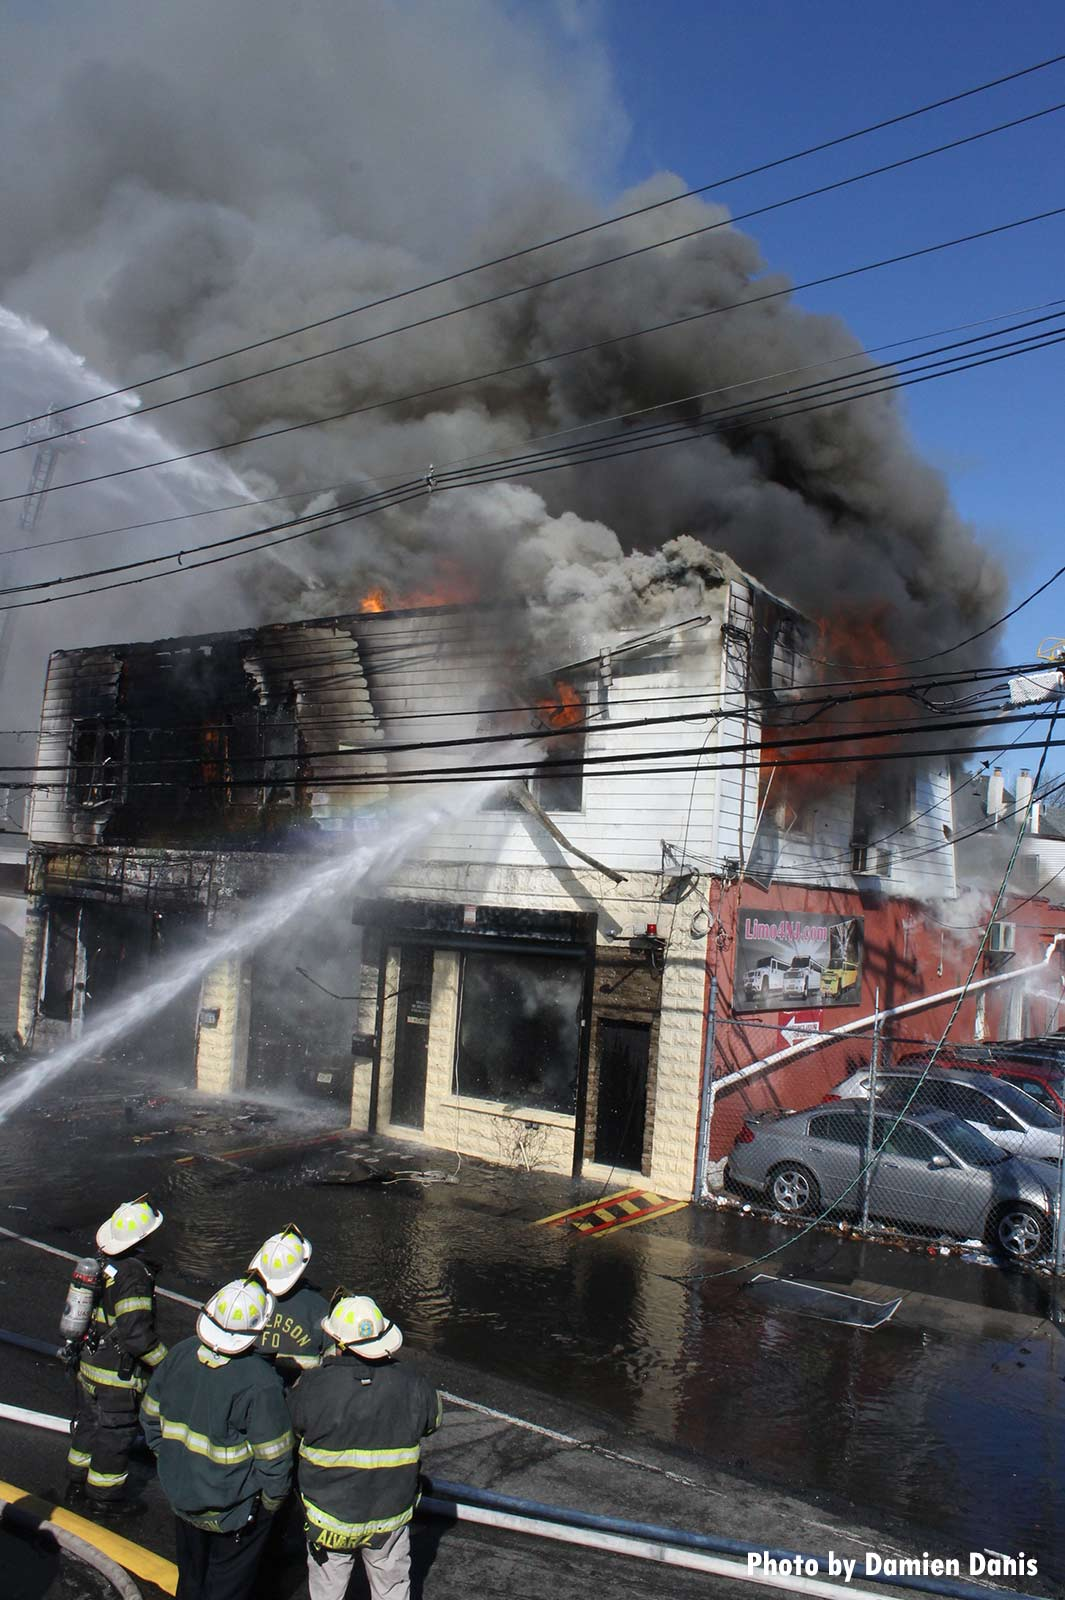 Firefighters pour water on a raging fire in Paterson, New Jersey